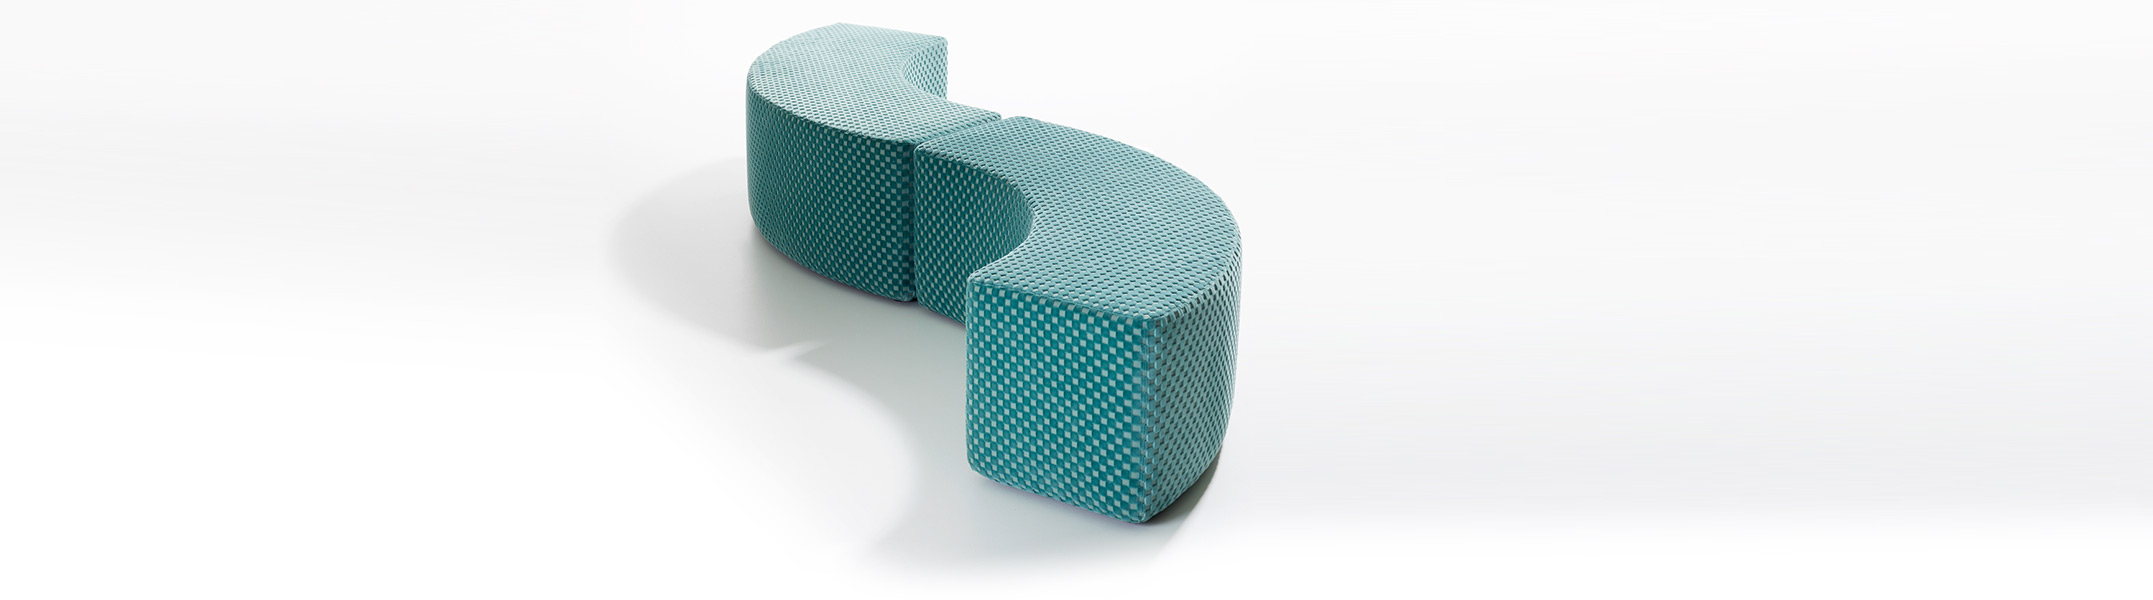 Dots Curve seating elements